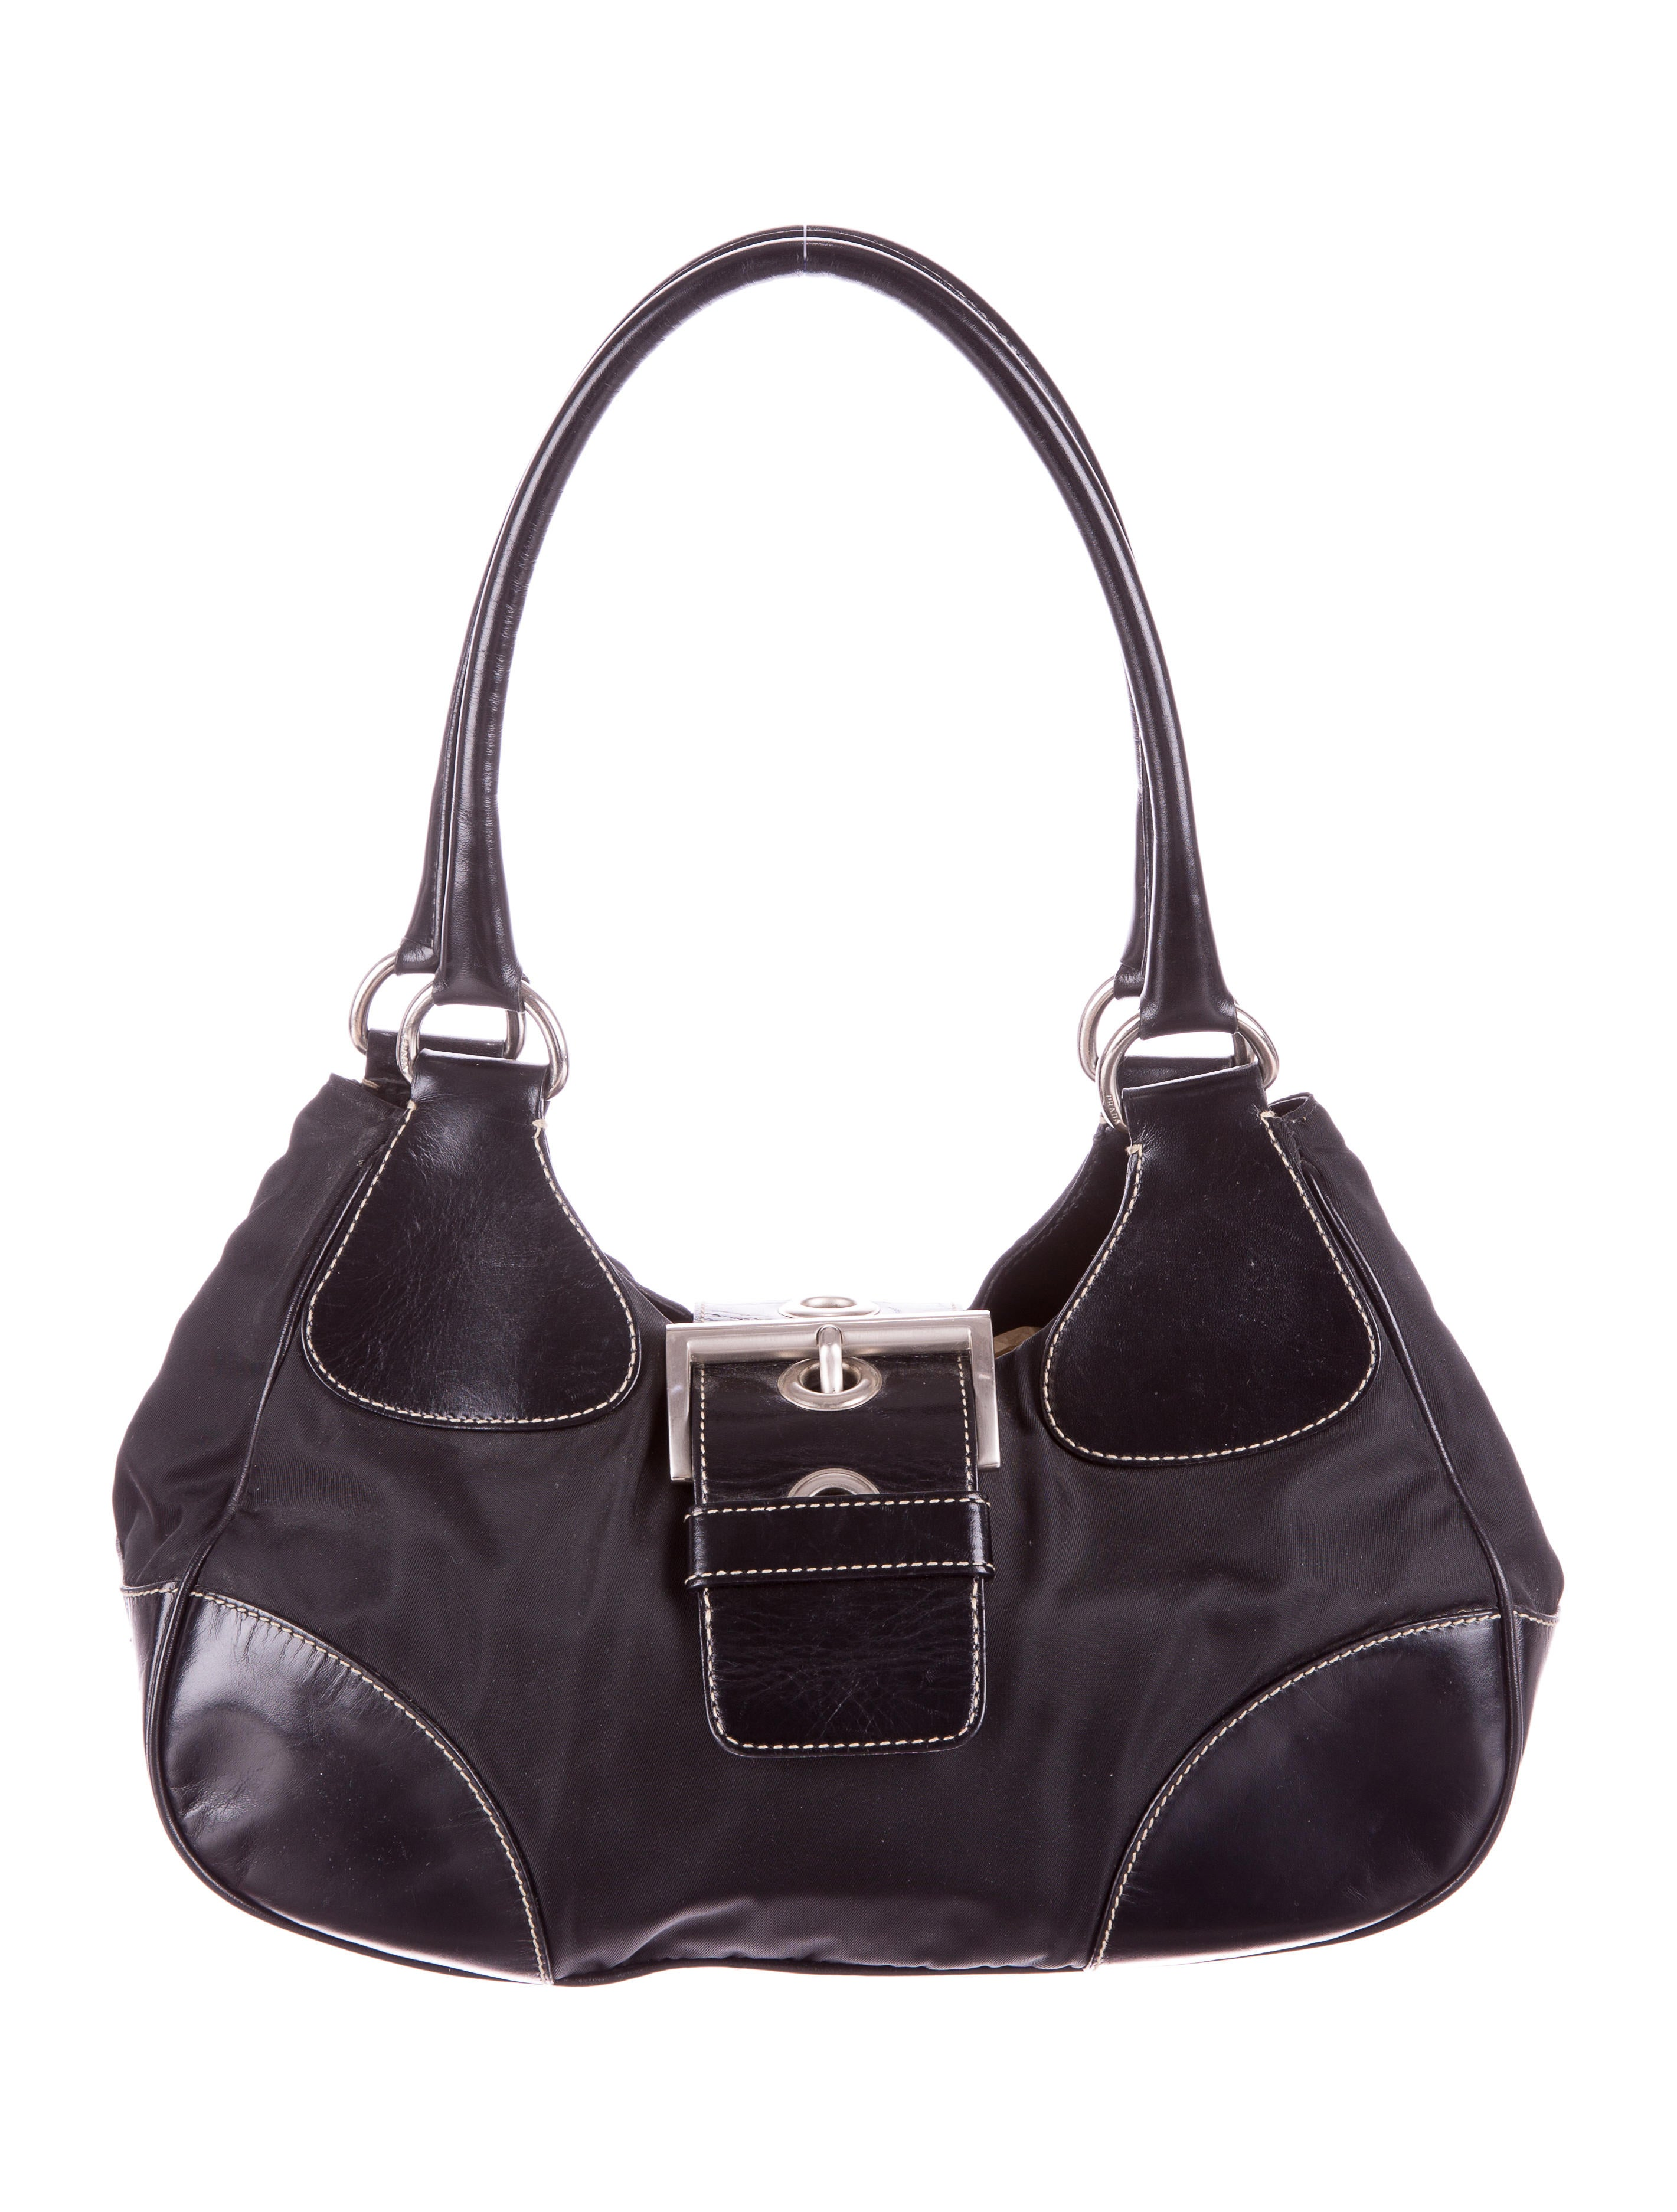 Model Prada Shoulder Bag - Handbags - PRA60642 | The RealReal